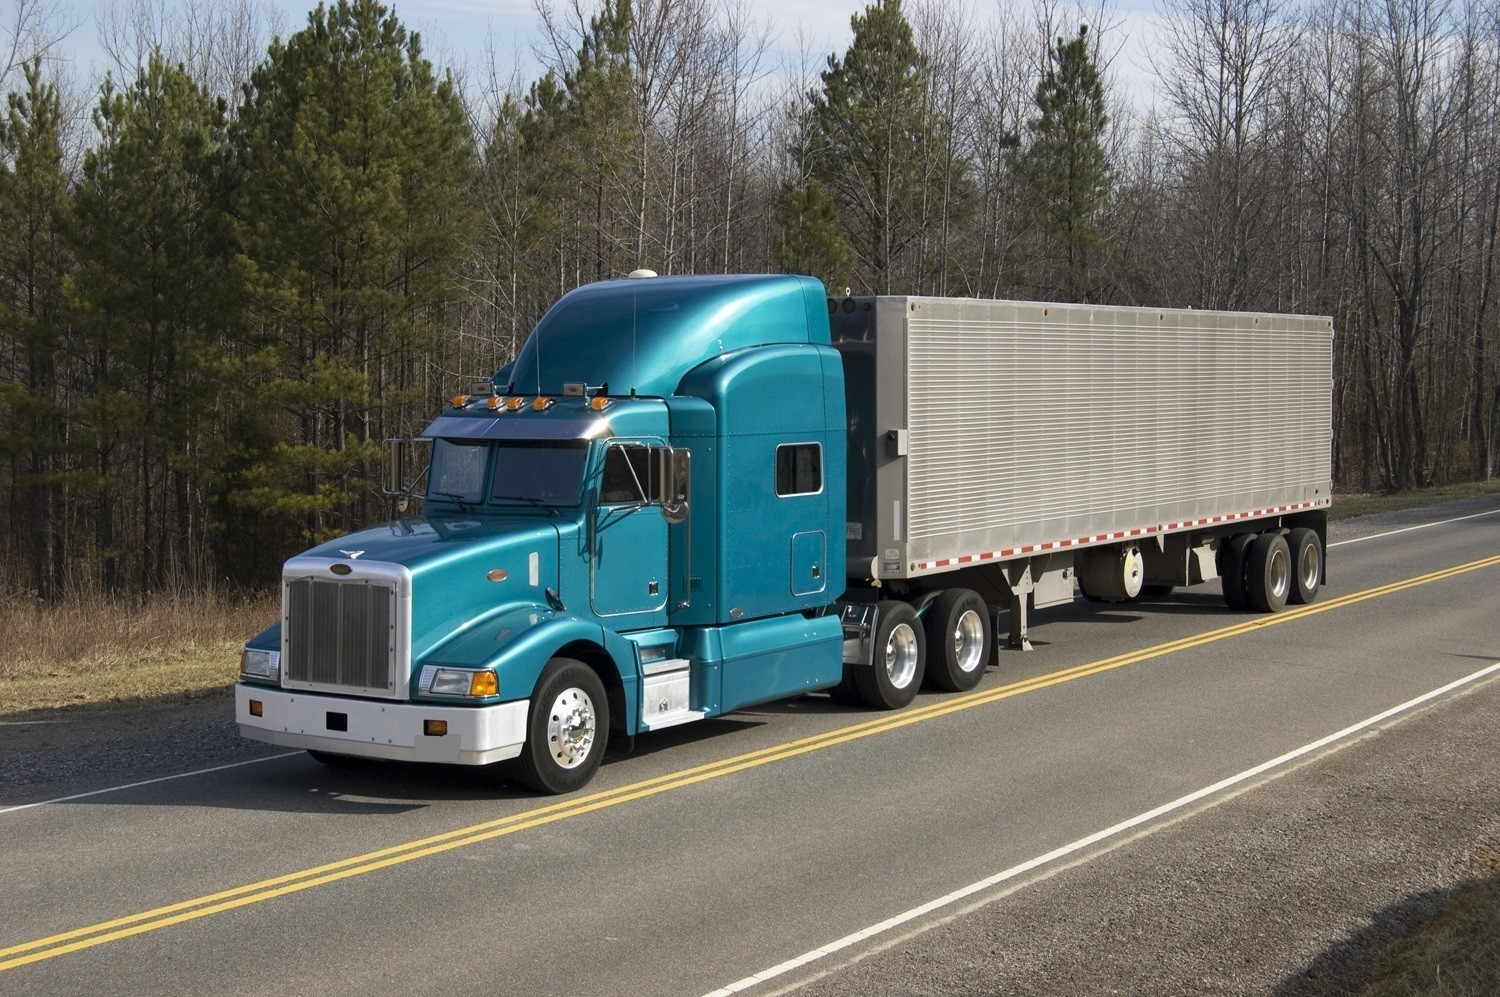 This troubled, covert agency is responsible for trucking ...